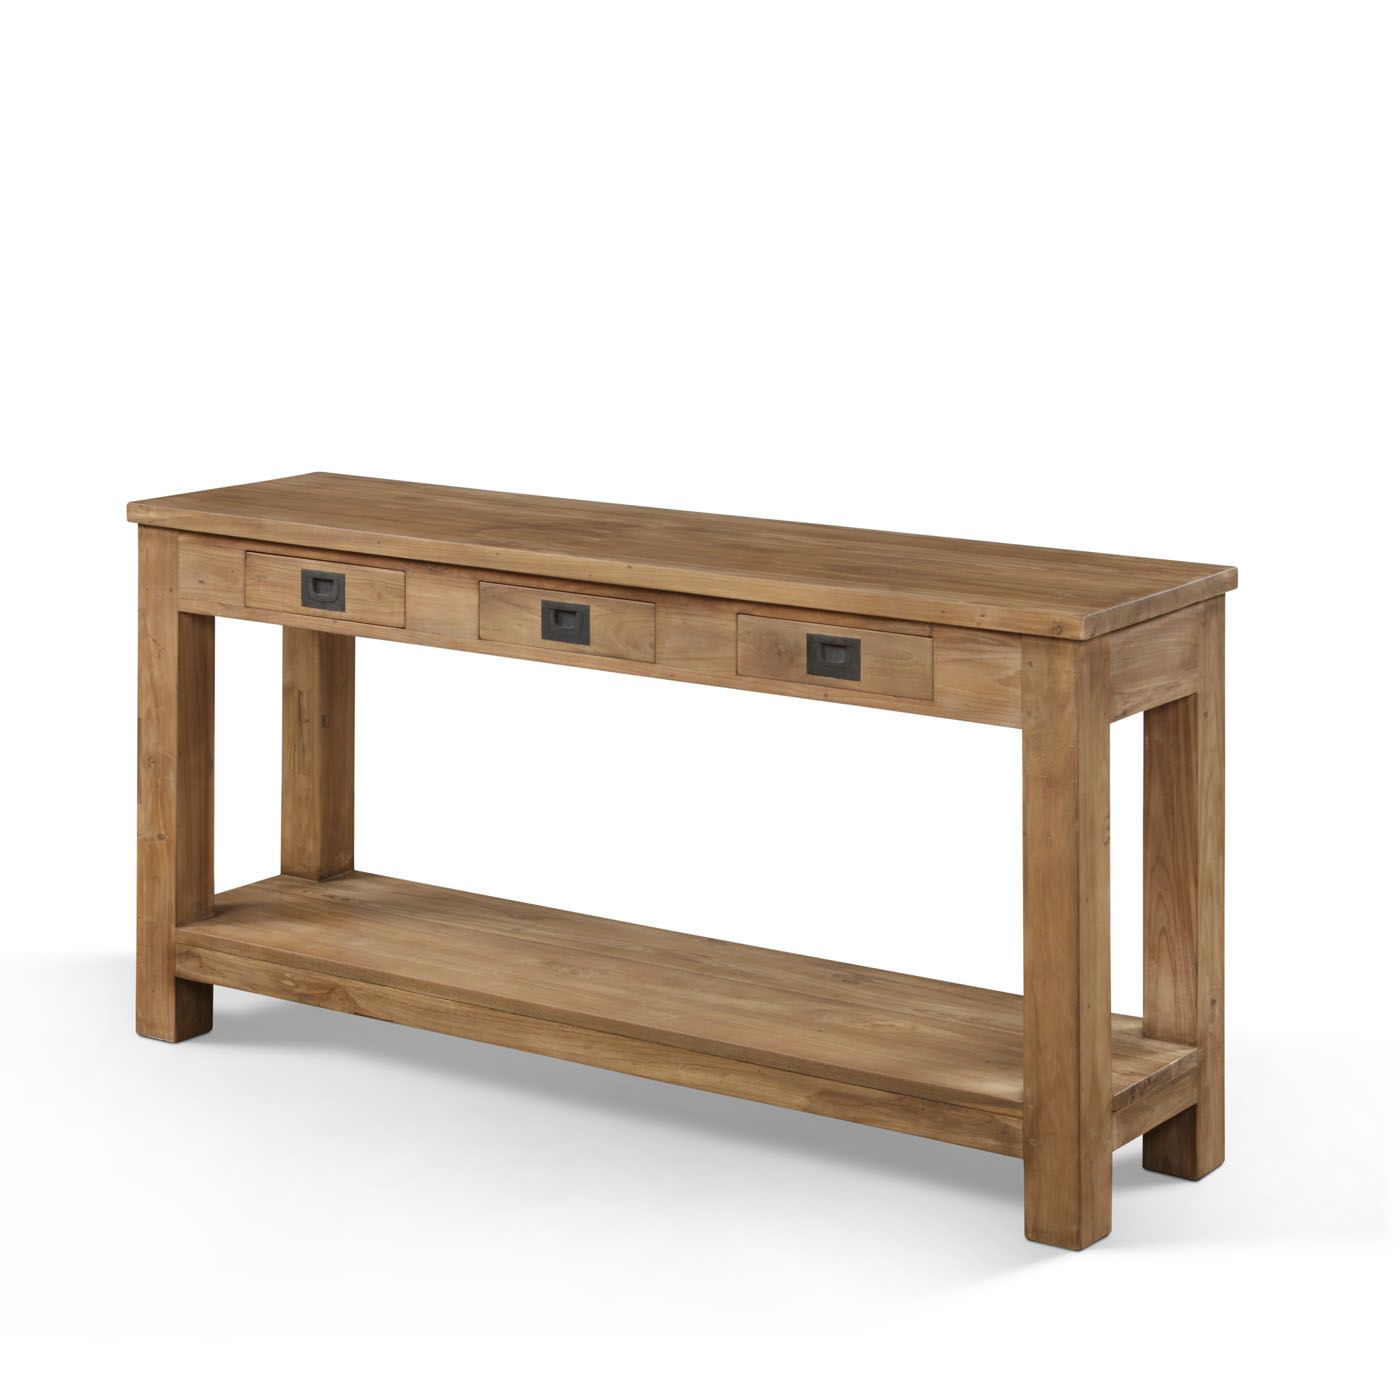 Everett Foyer Table Uk : Furniture long and narrow oak console table with storage